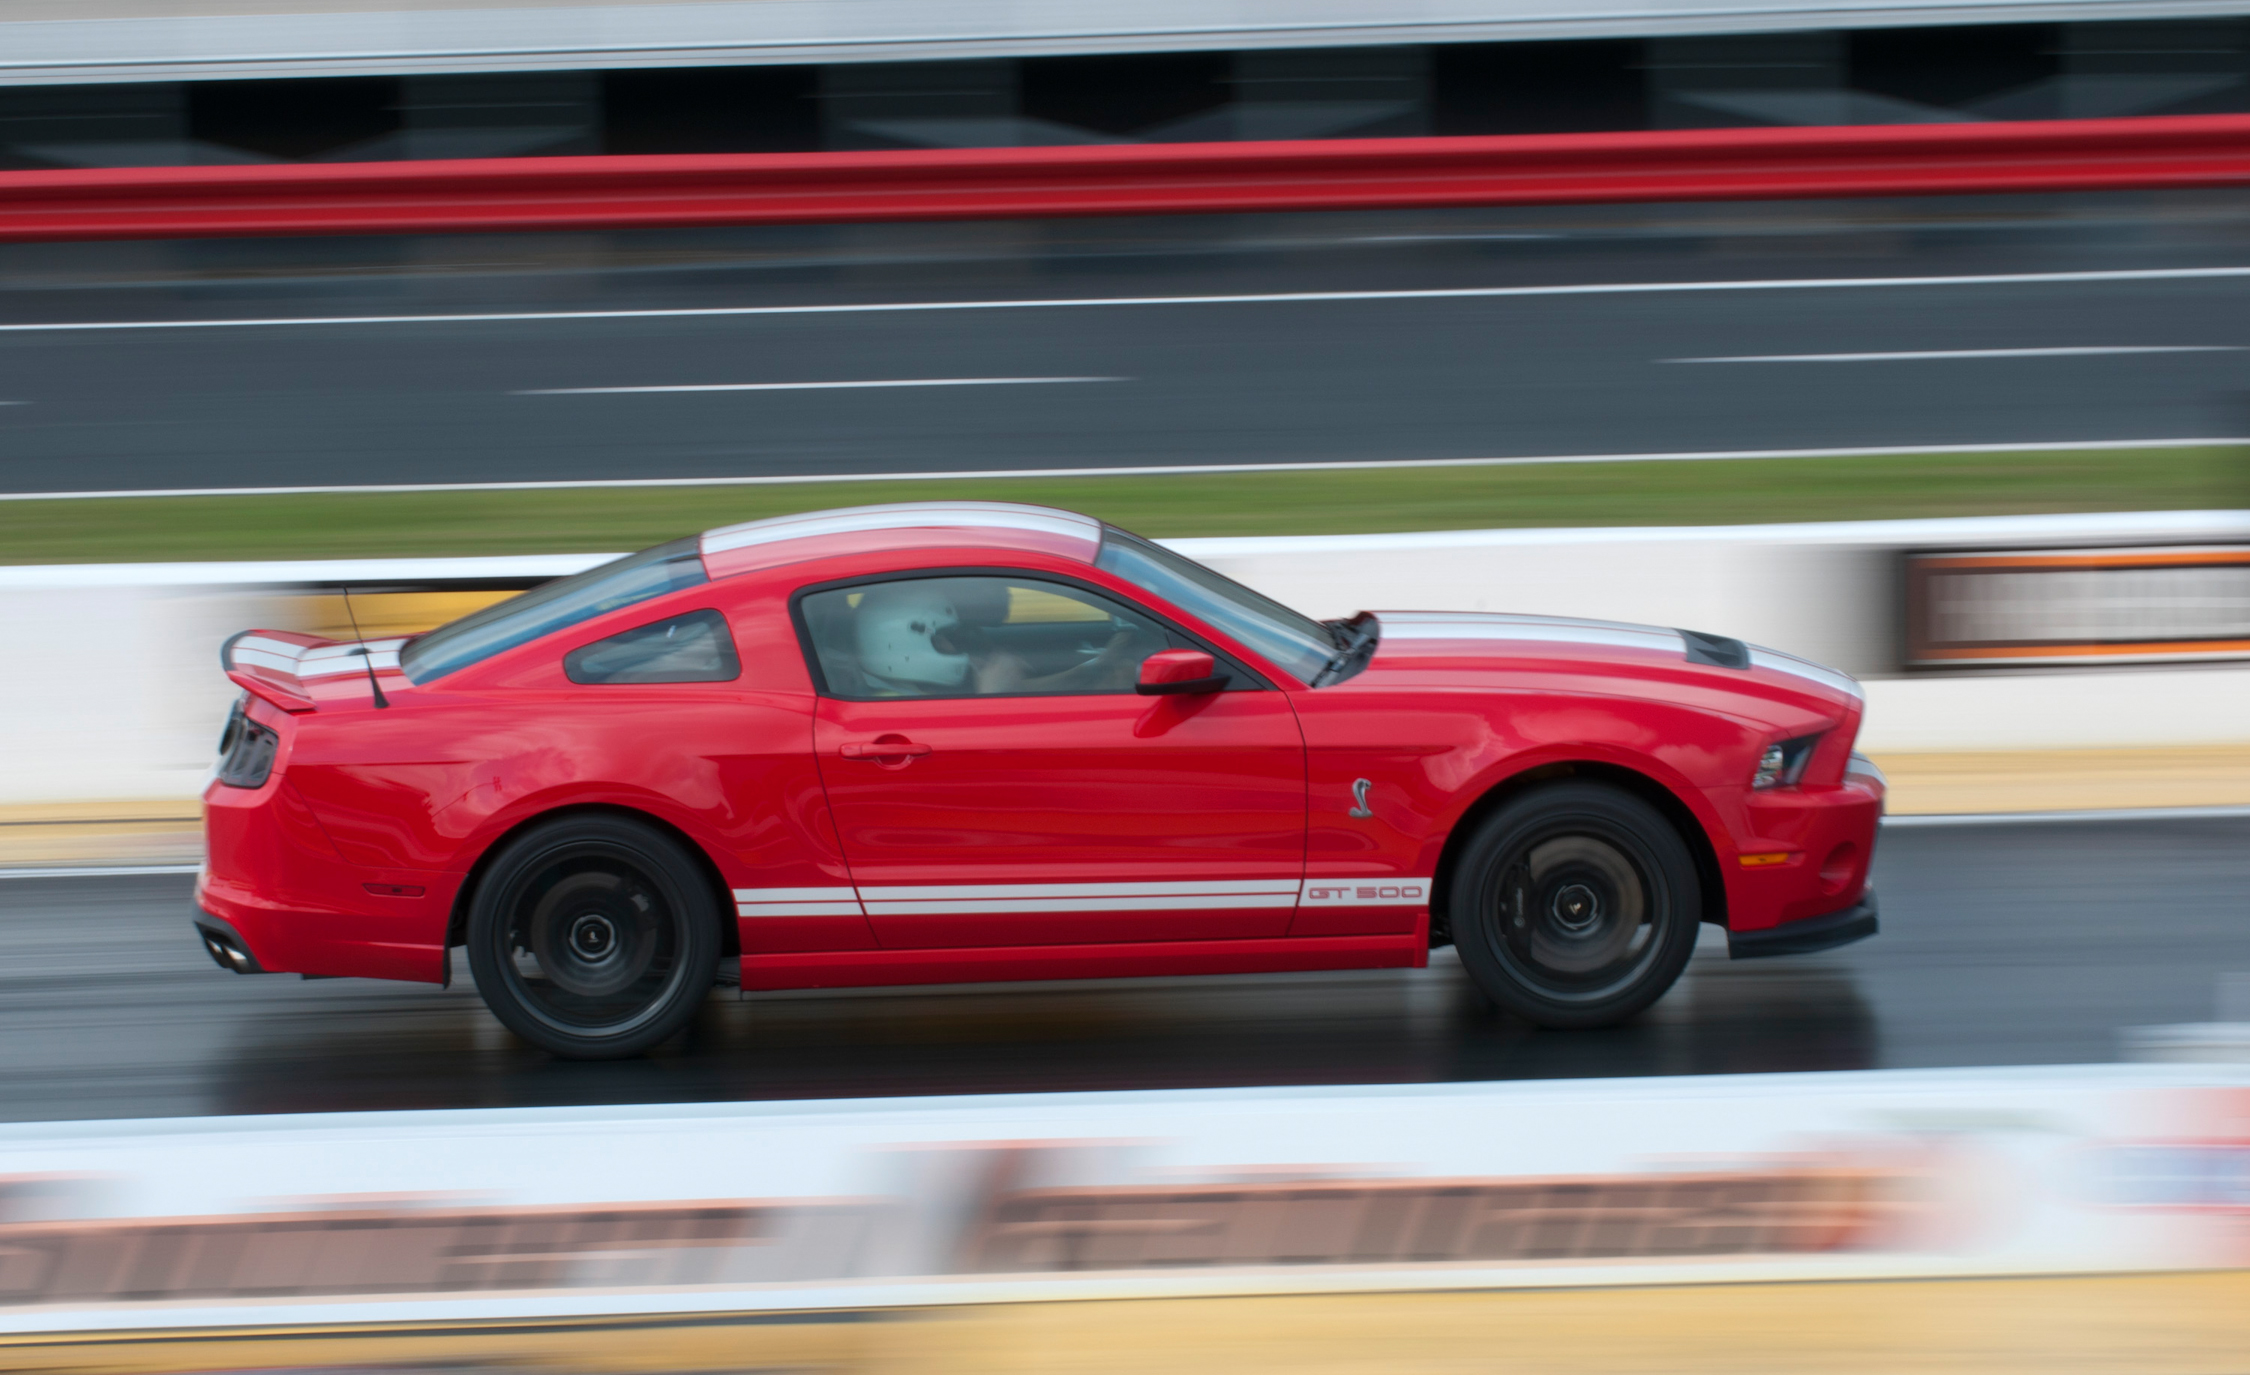 2013 Ford Mustang Shelby GT500 Red Test Drive Performance (Photo 36 of 47)